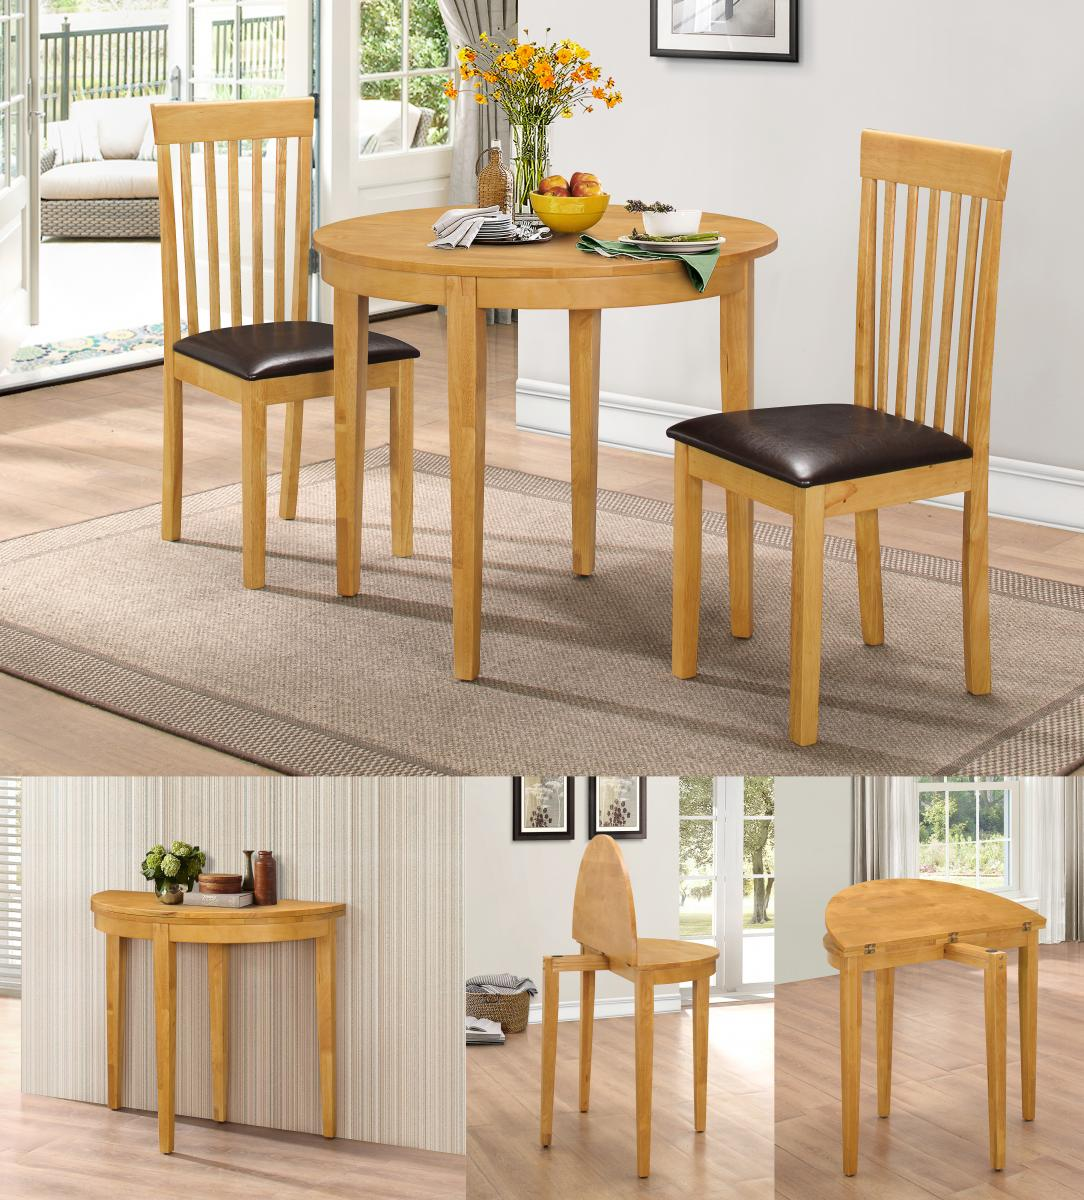 Lunar Dining Set with 2 Chairs